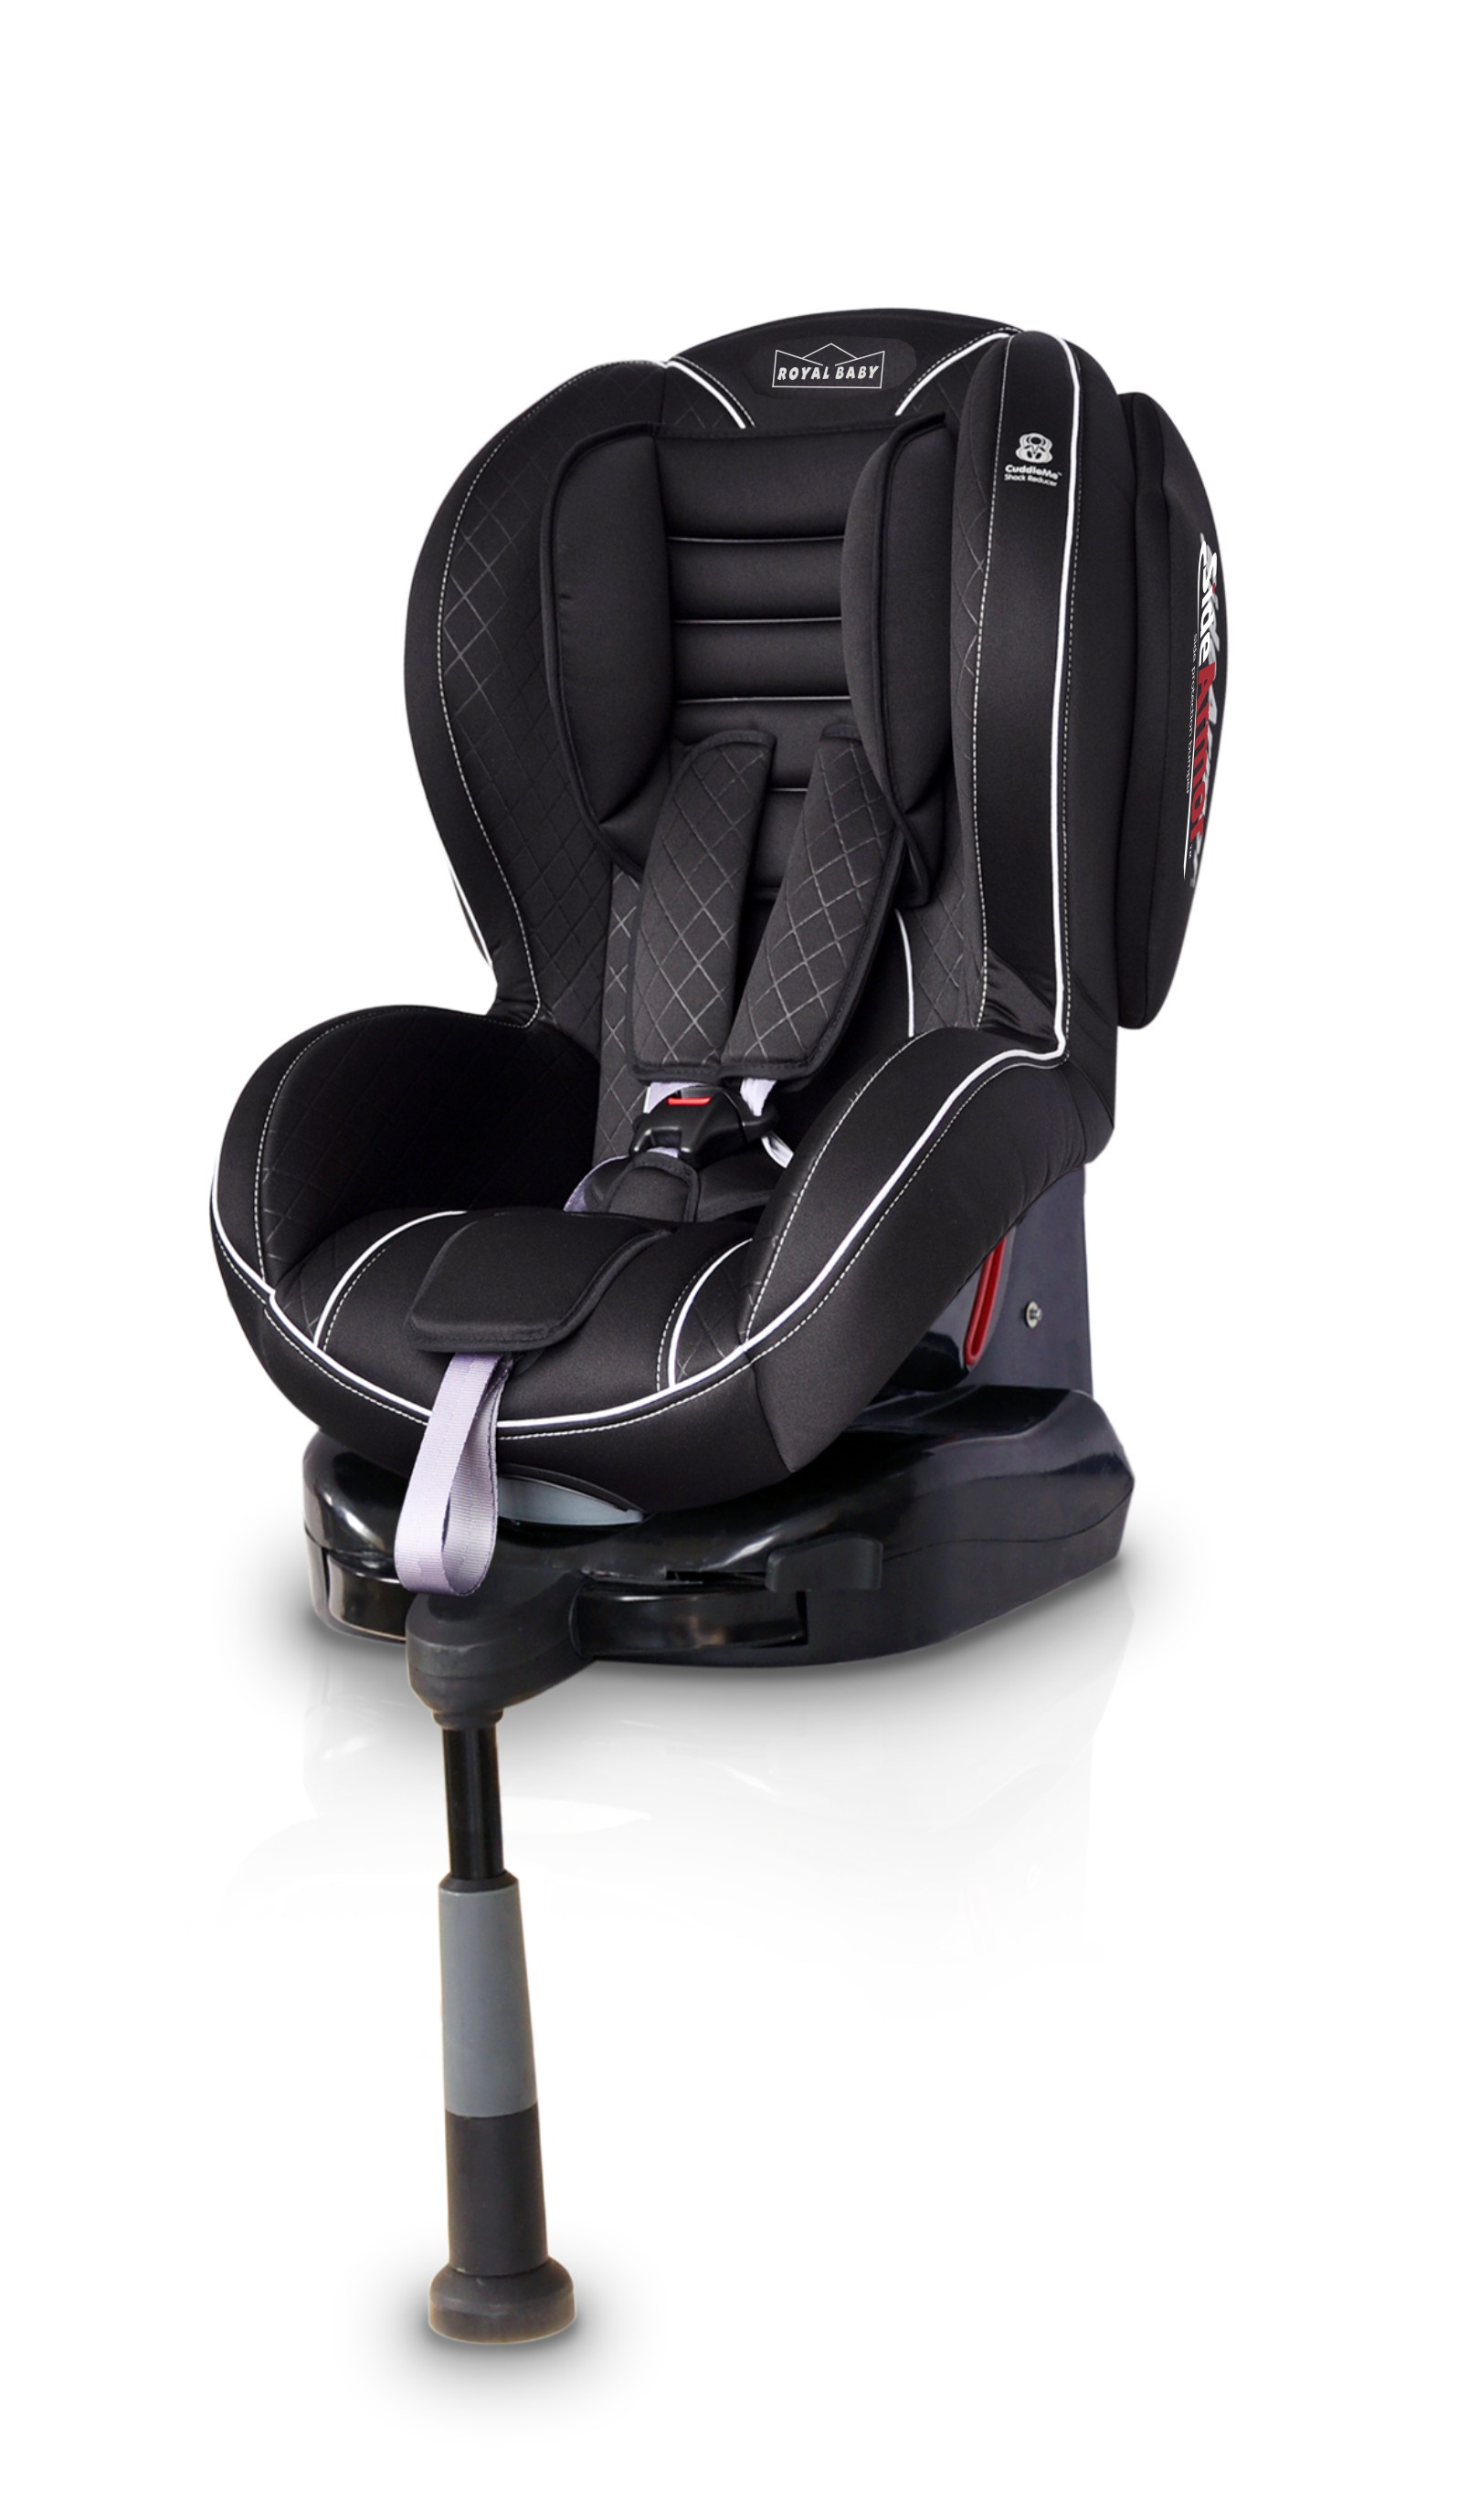 Автокресло Welldon Royal Baby Isofix (Inke Jade) автокресло welldon royal baby side armor